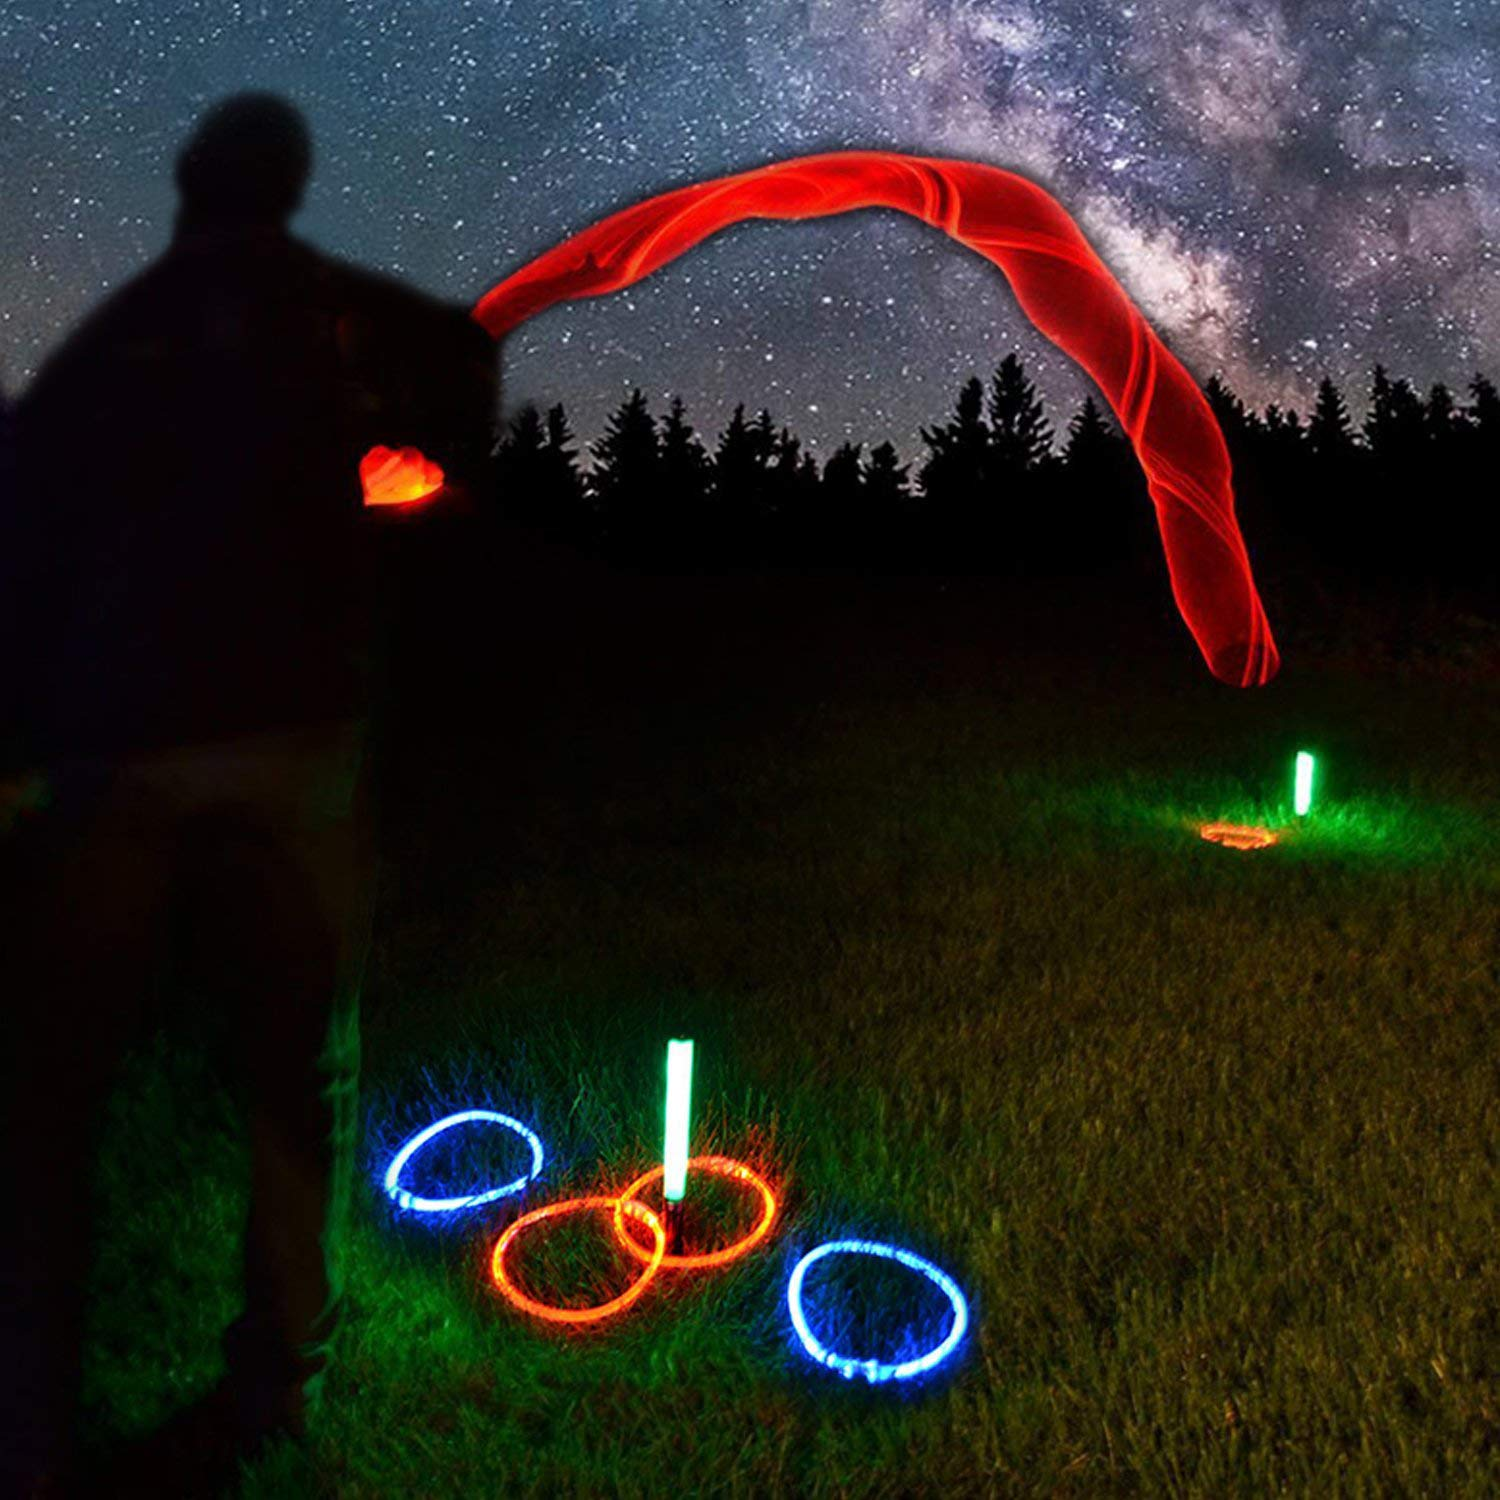 GlowCity Light Up LED Ring Toss Game - by by GlowCity